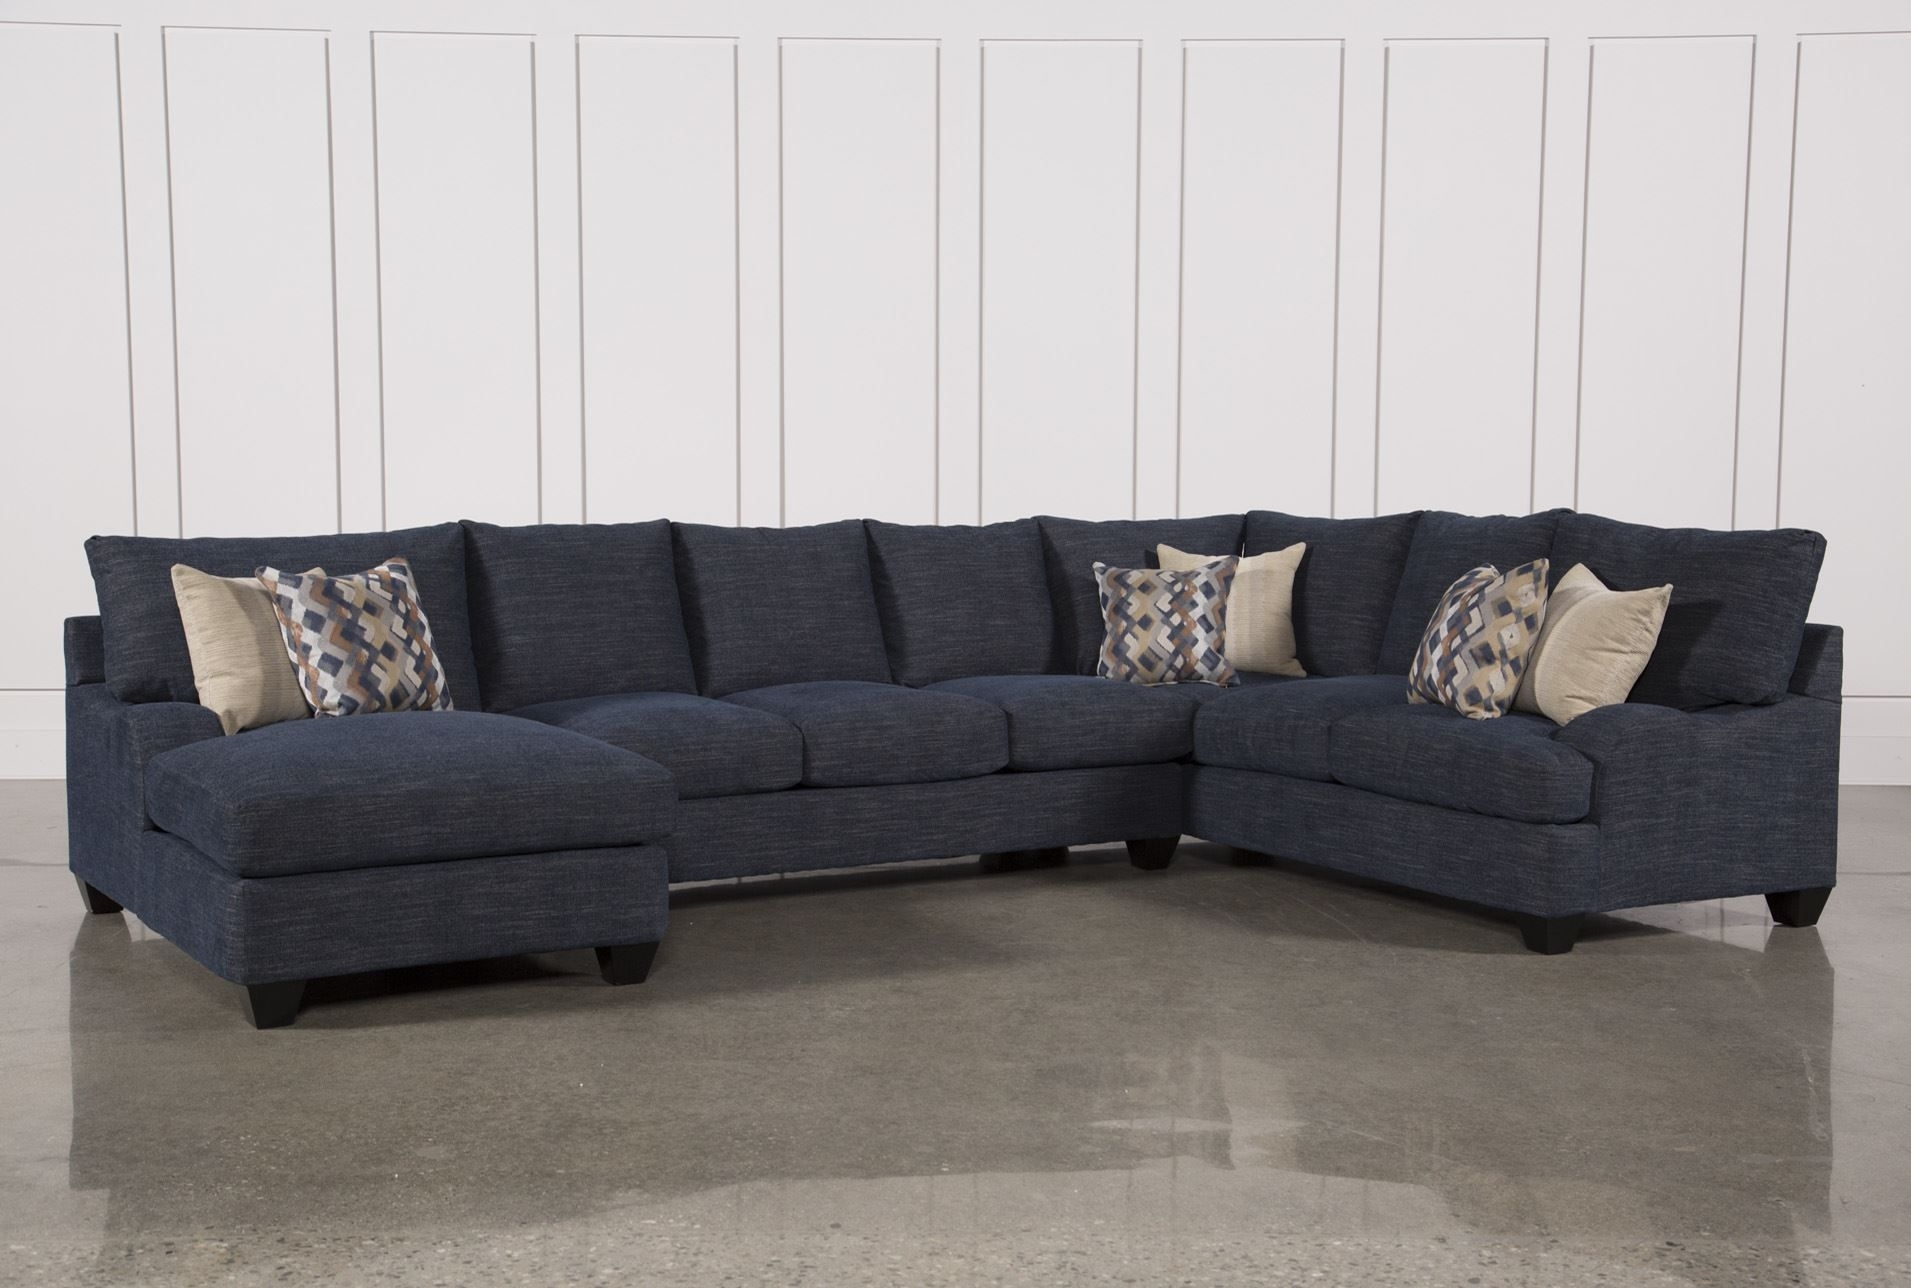 Sierra Down 3 Piece Sectional W/laf Chaise | Sofas And Sectionals With Adeline 3 Piece Sectionals (View 5 of 25)